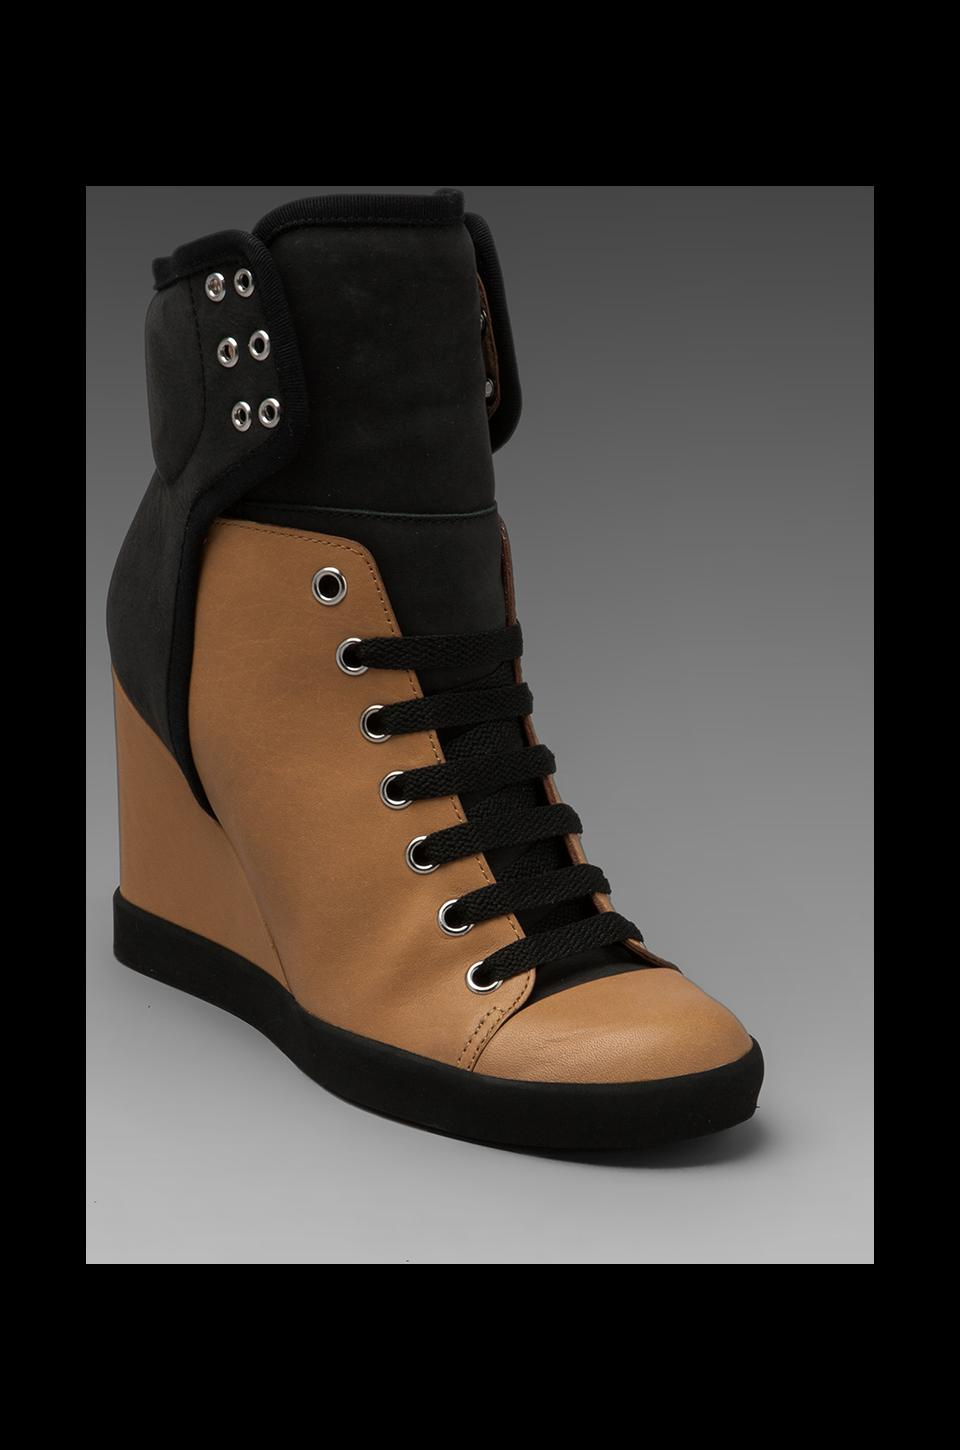 See By Chloe X Sam Wedge Sneaker in Beige